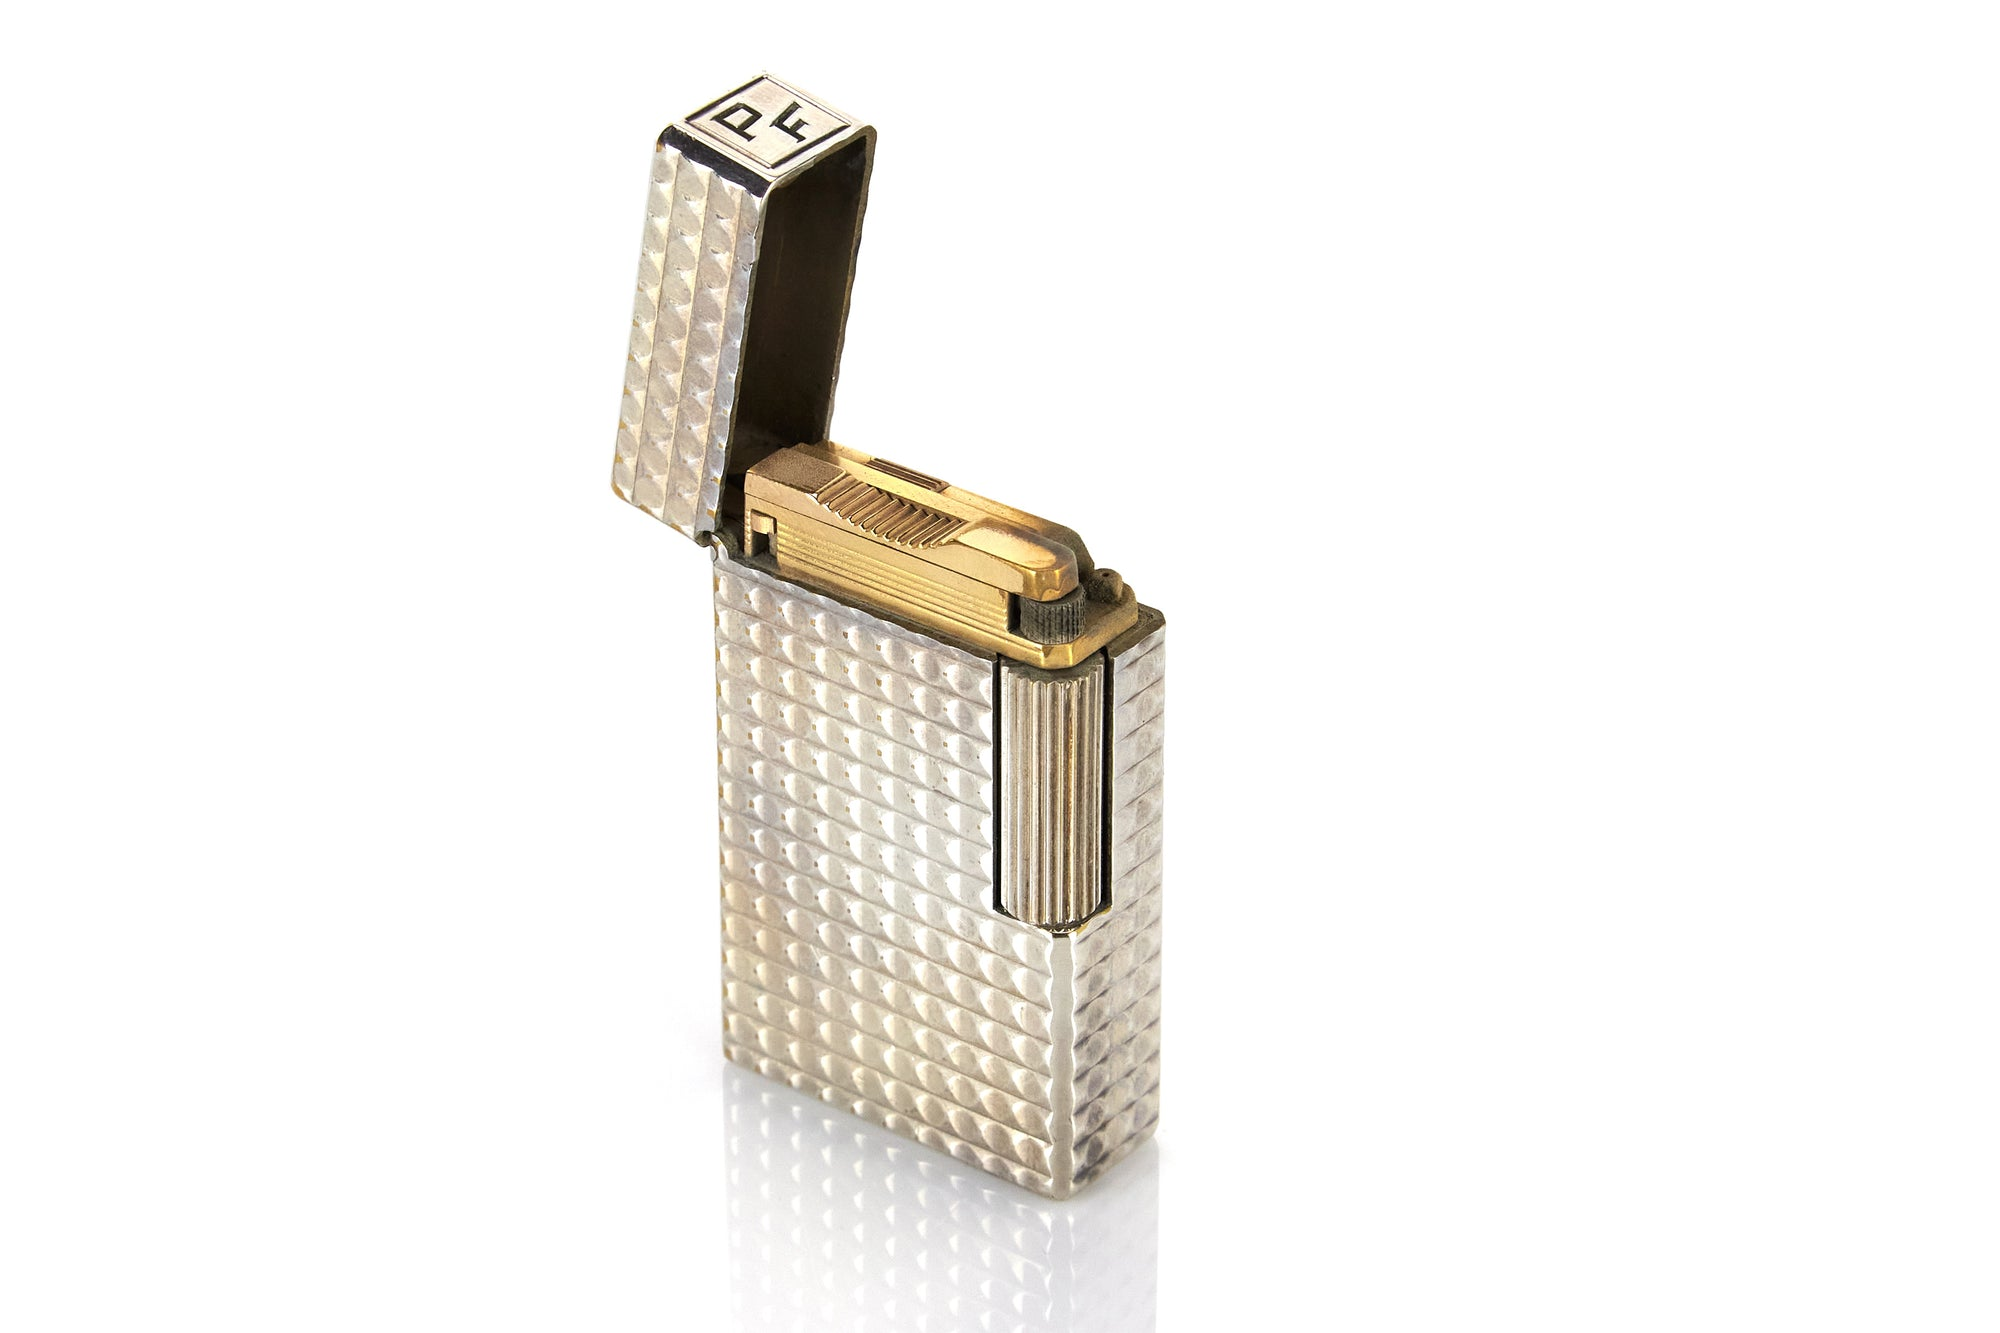 S.T. Dupont Lighter, Pocket Sized